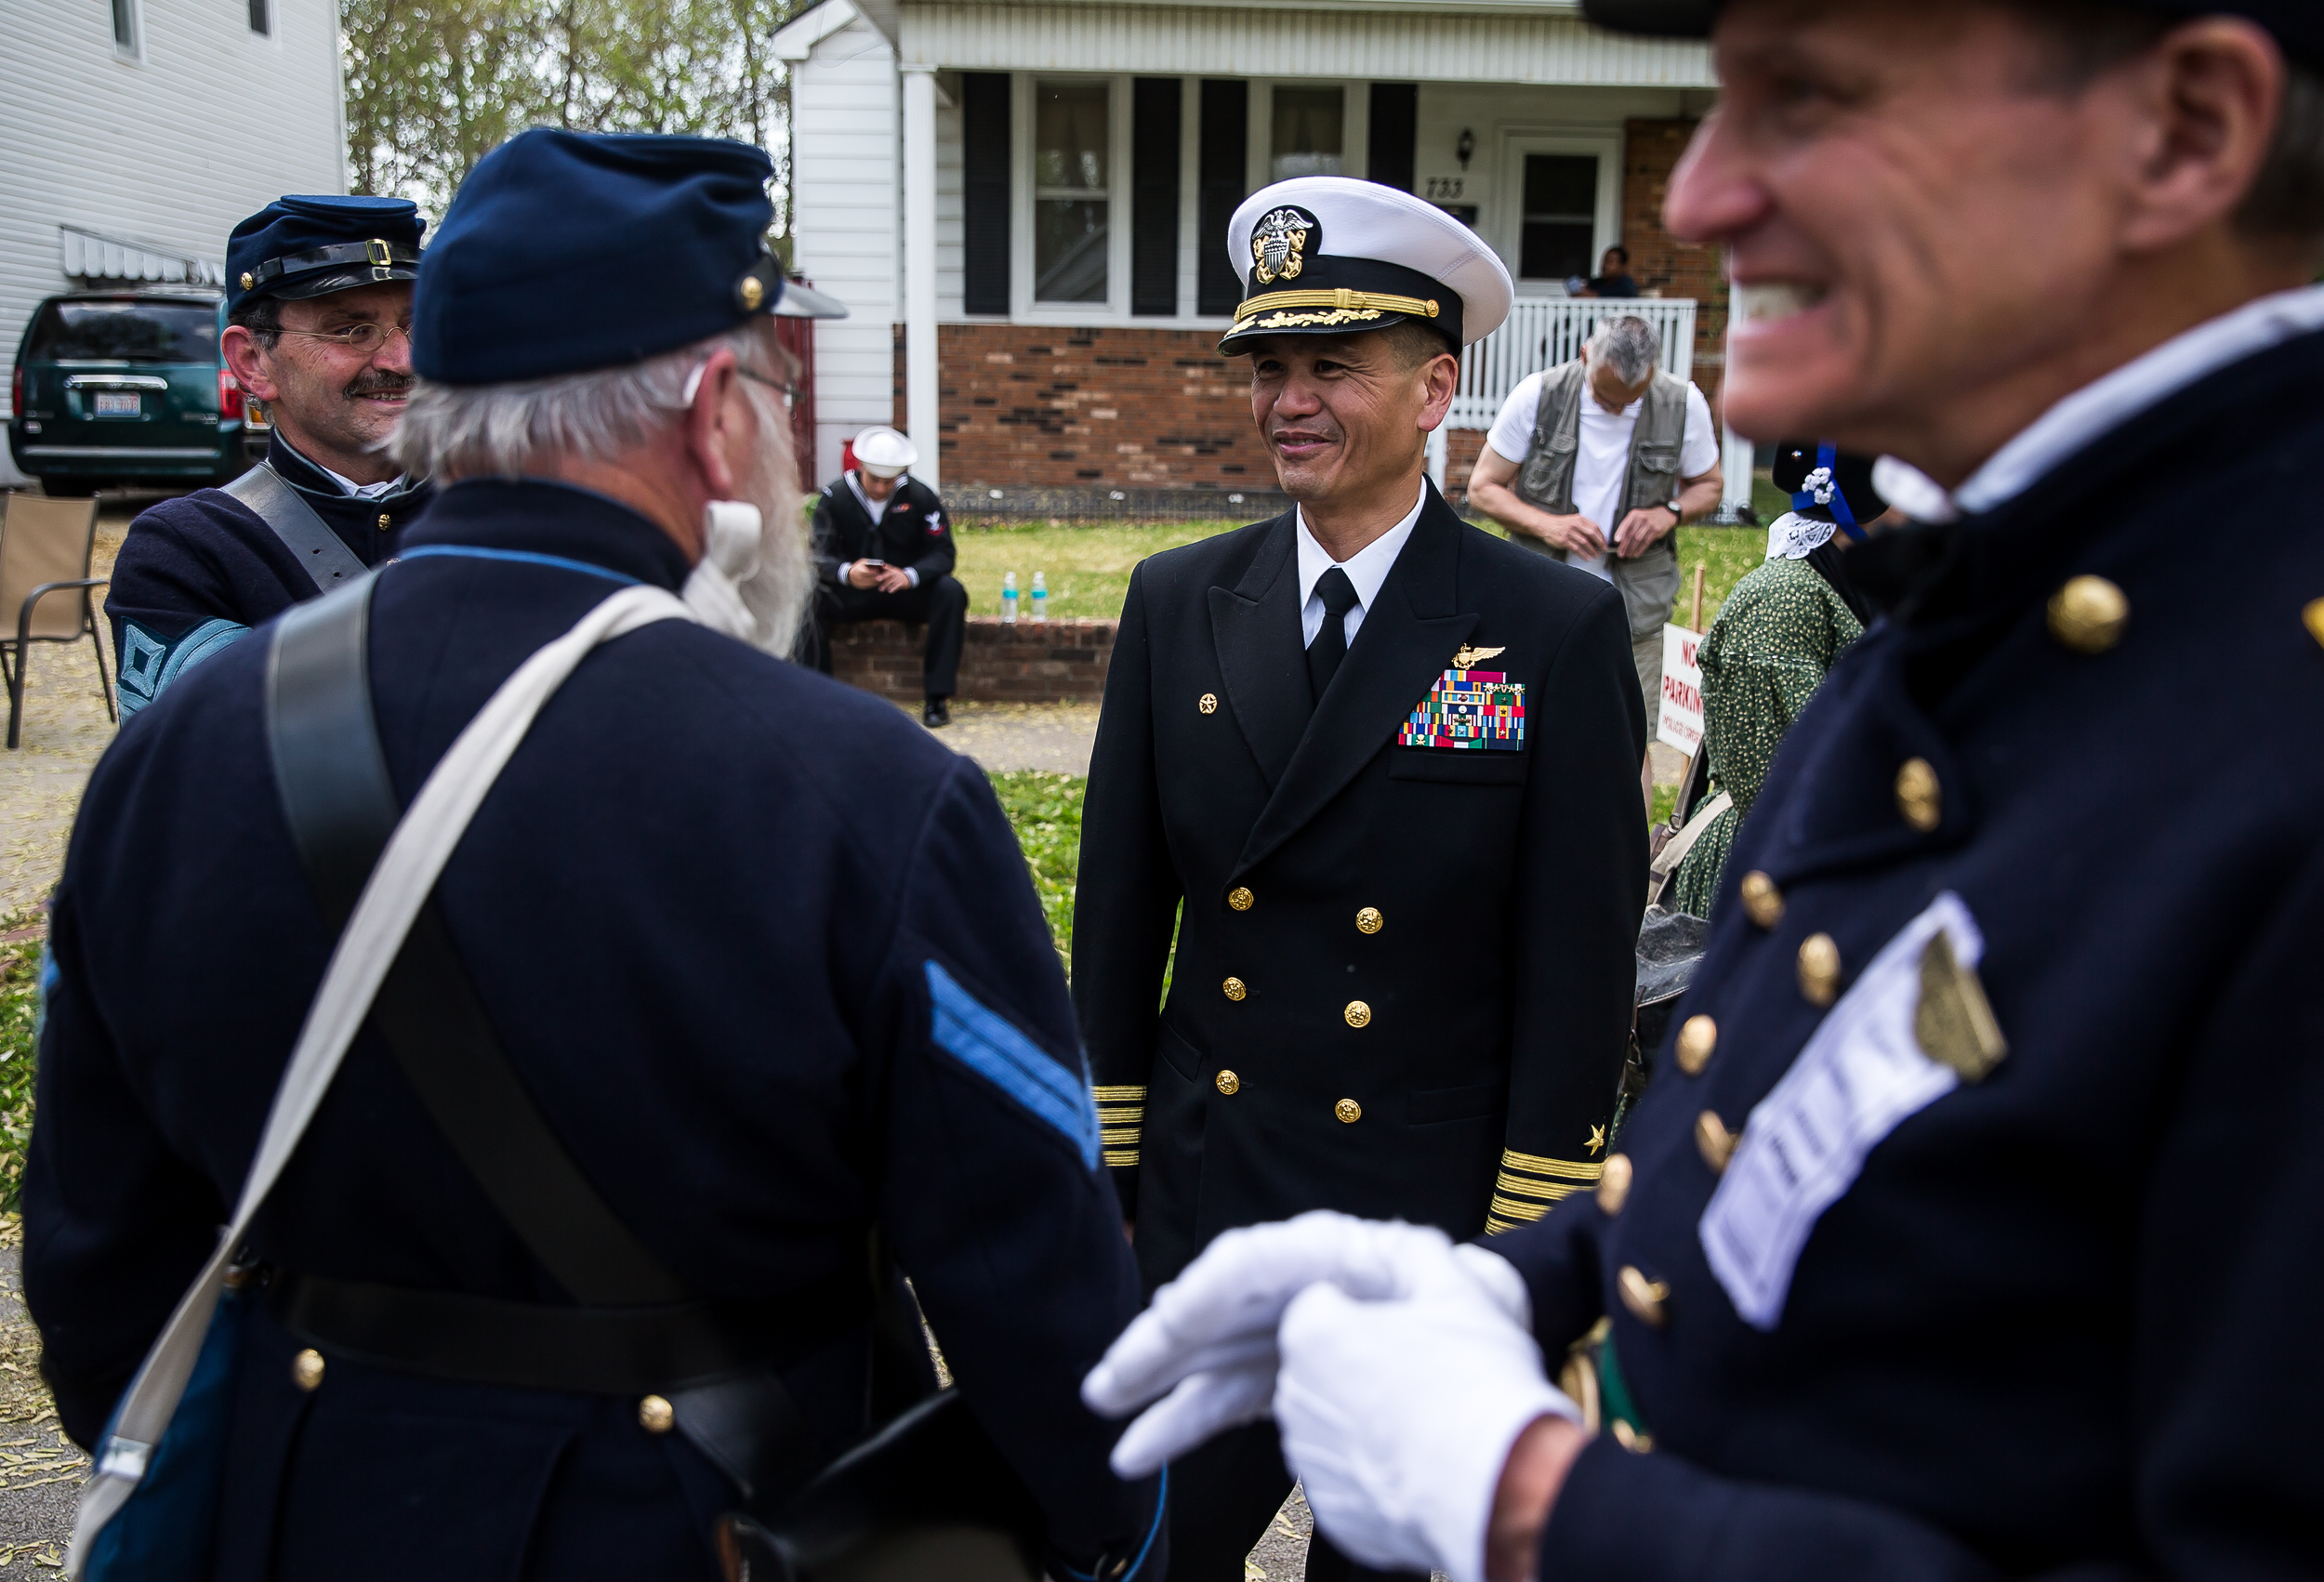 Capt. Ron Ravelo, center, Commanding Officer USS Abraham Lincoln, pauses for a moment to talk with the re-enactors as the funeral procession takes a break along Fourth Street during the 2015 Lincoln Funeral Re-enactment, Sunday, May 3, 2015, in Springfield, Ill. Justin L. Fowler/The State Journal-Register